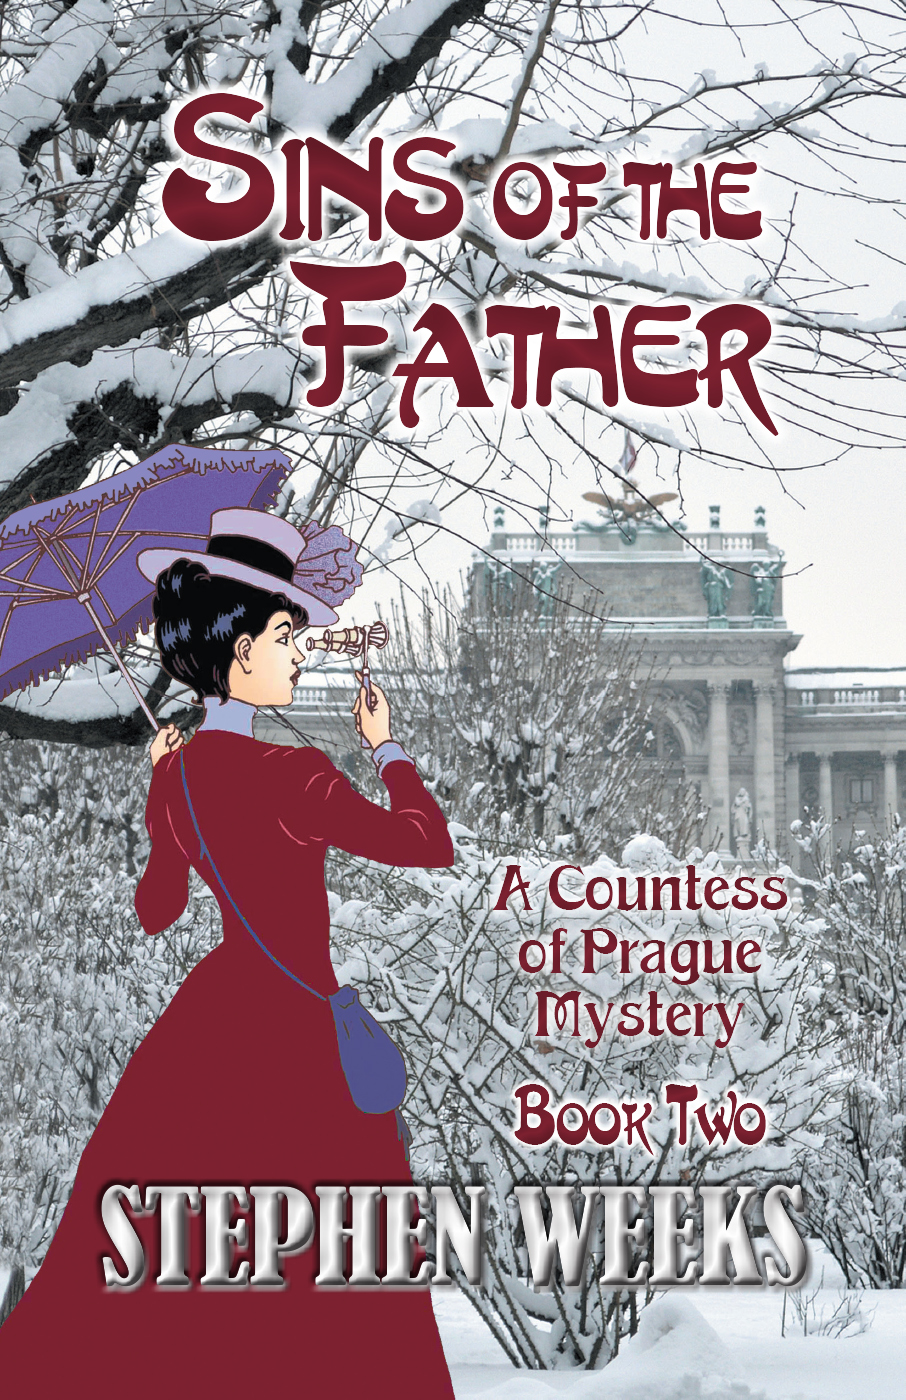 Sins of the father - bibliophile review